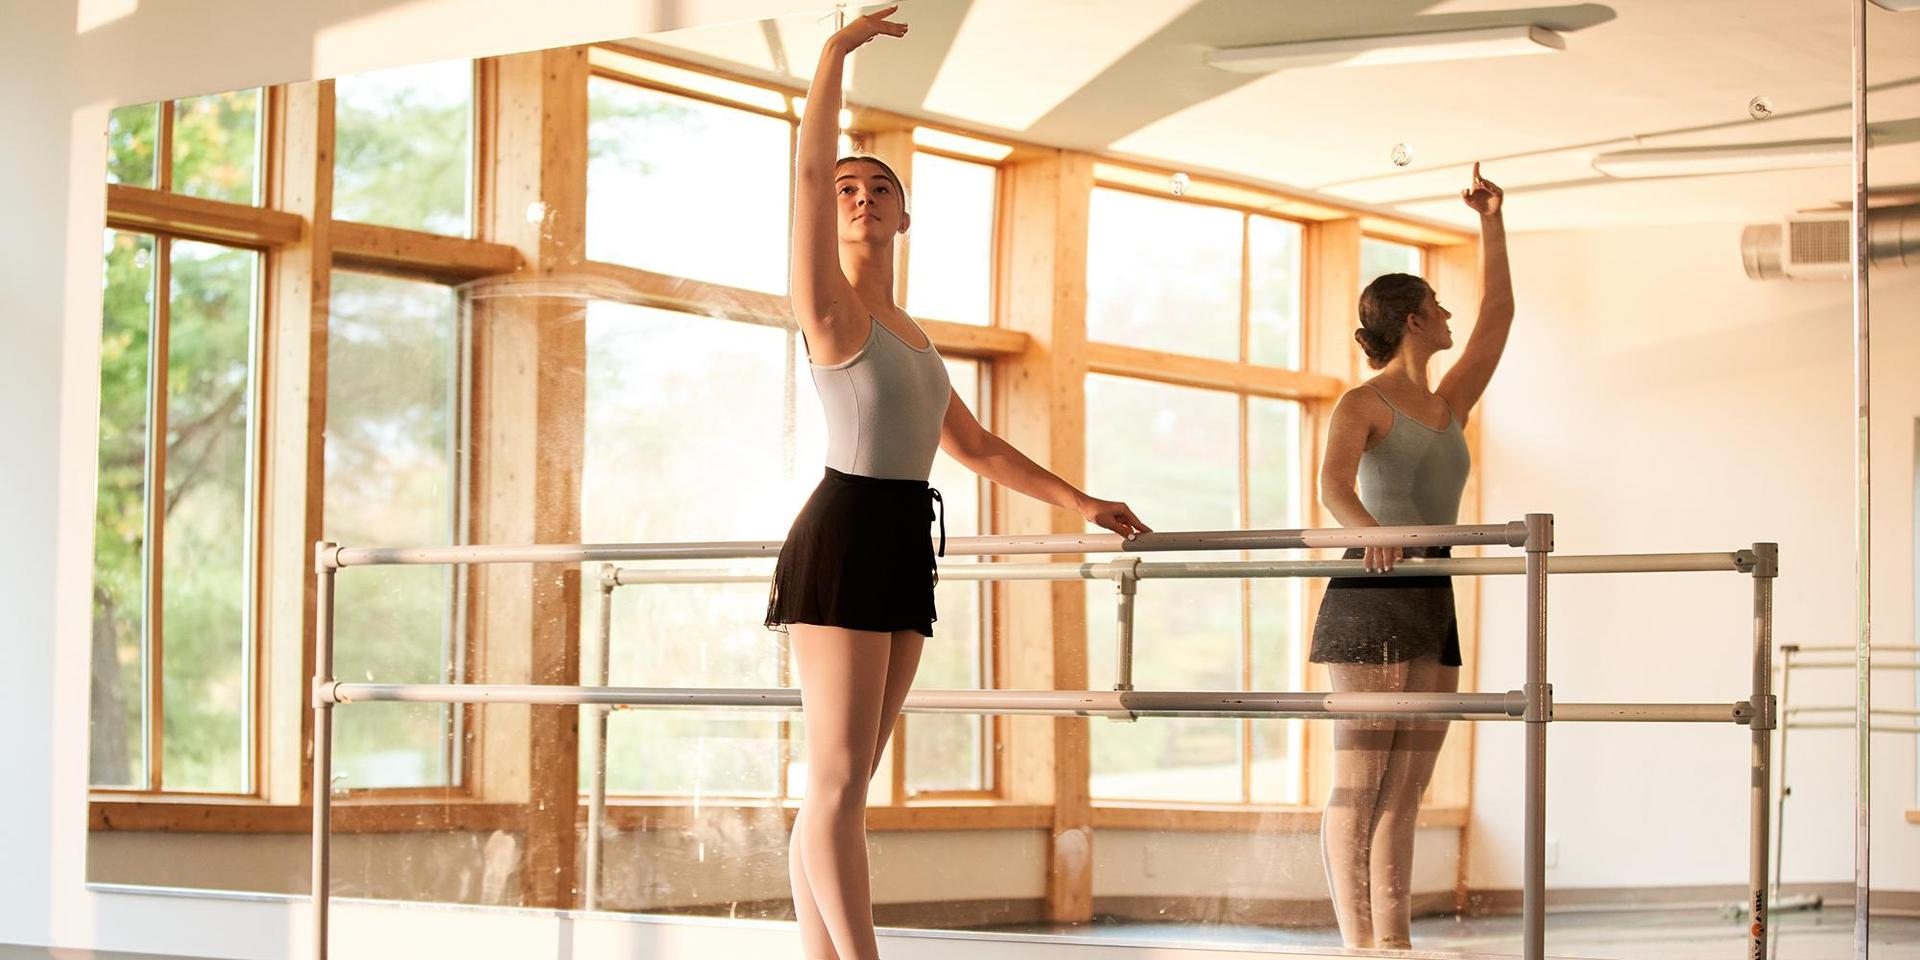 A student practicing in Creative Edge Dance Studio.